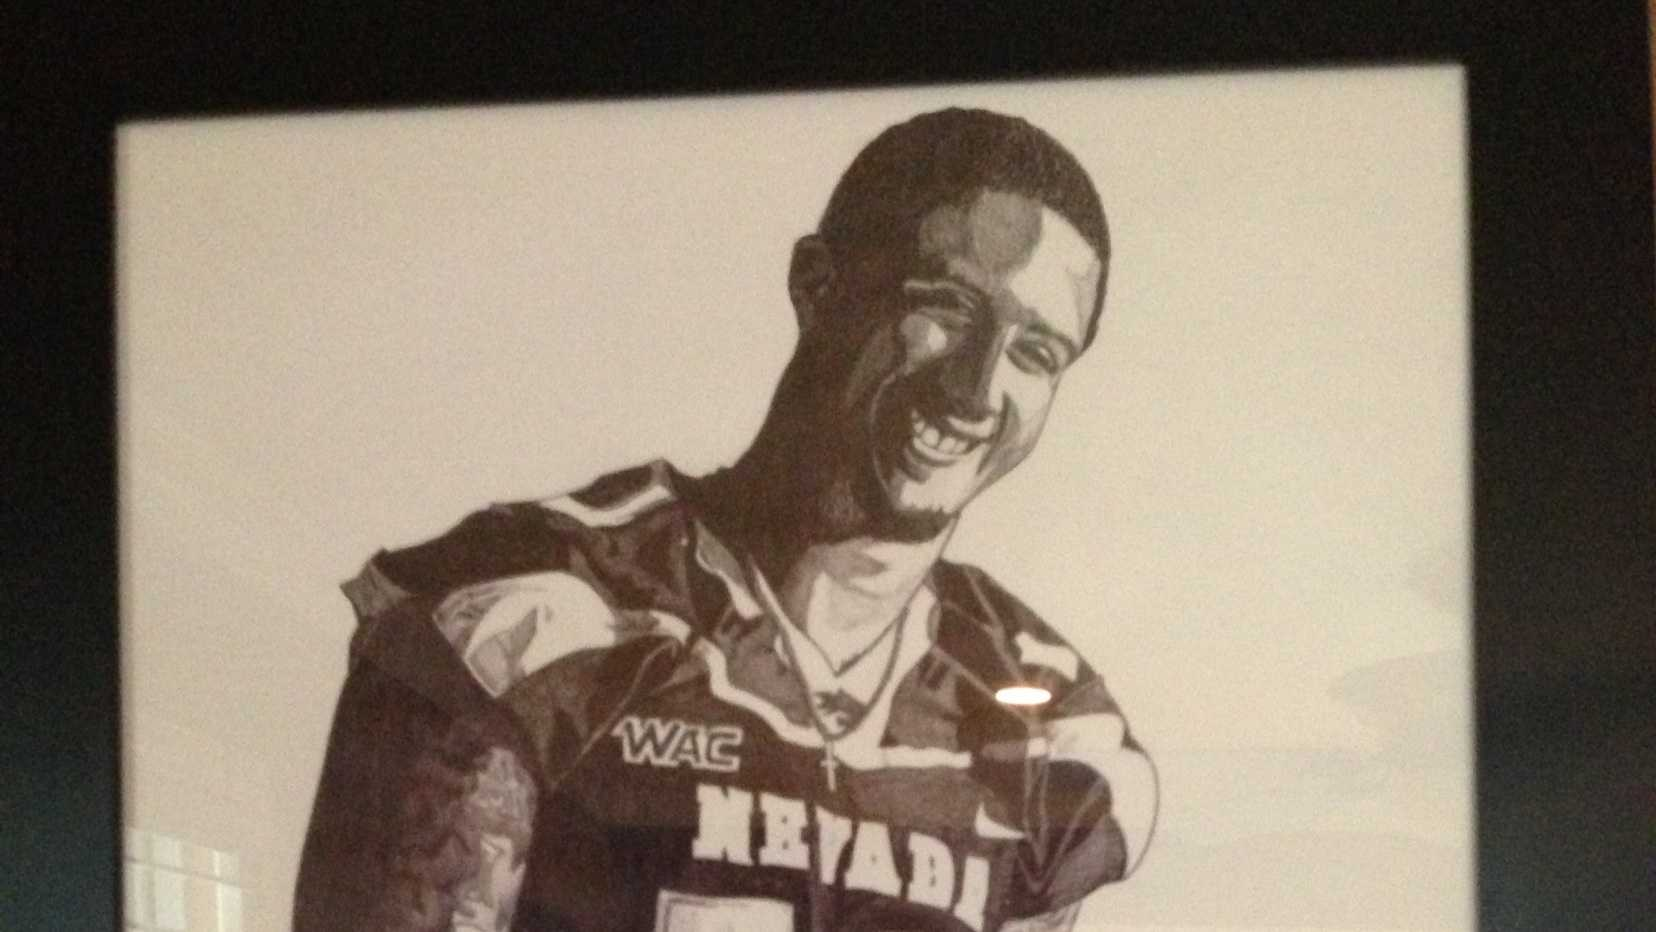 Colin's Uncle Rand Kaepernick did this drawing with a bic pen.